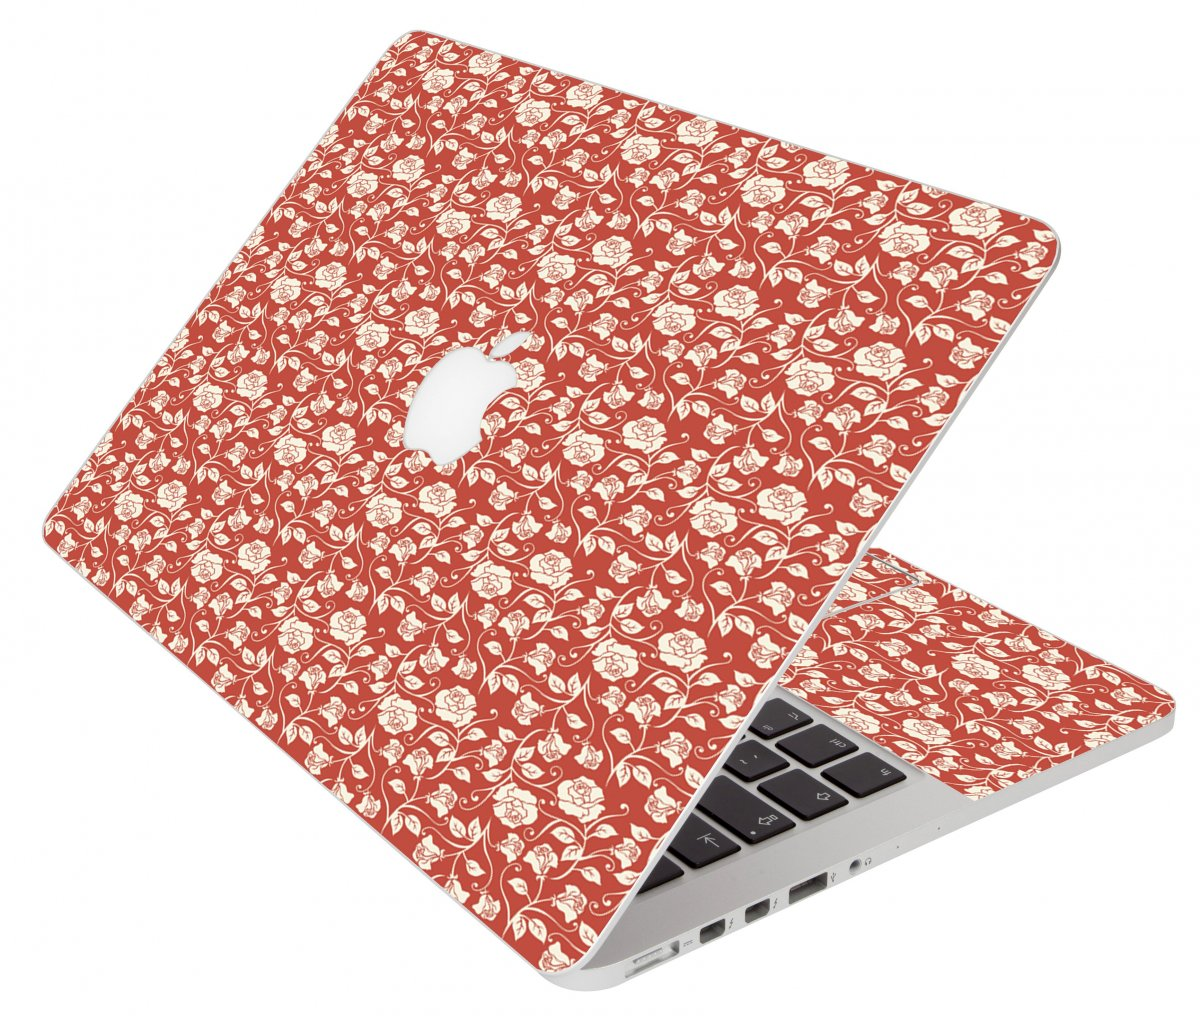 Pink Roses Apple Macbook Pro 17 A1297 Laptop Skin